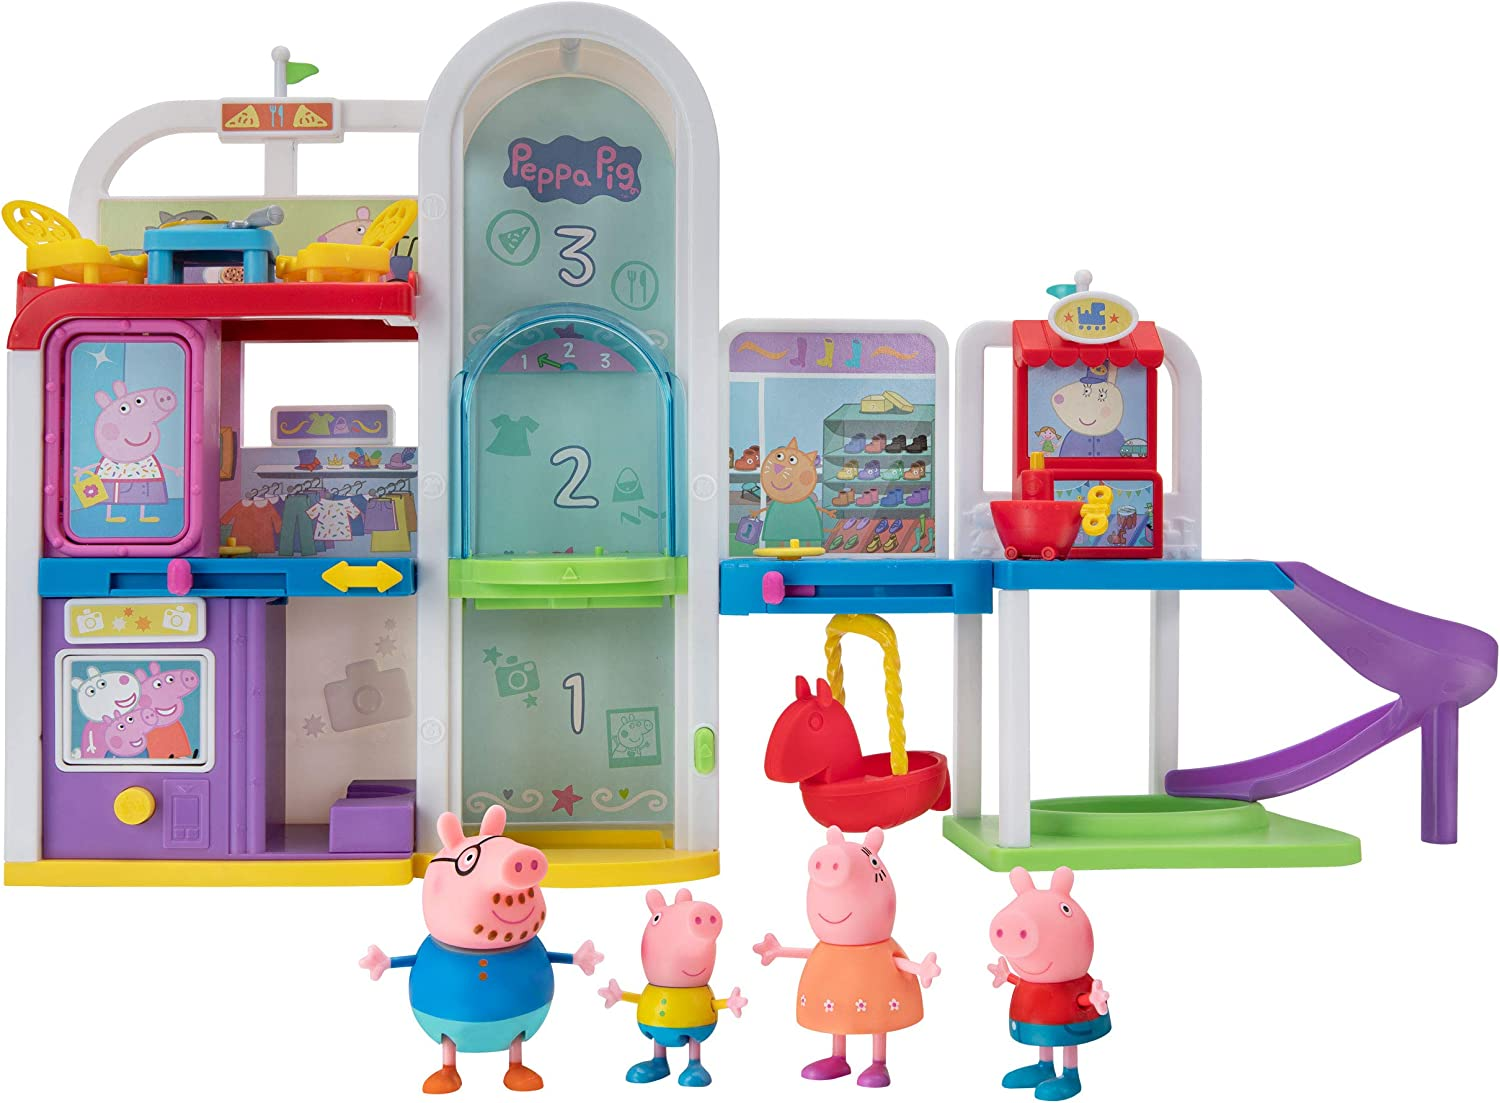 Peppa Pig Shopping Mall with Family, Includes 1 Connectable Mall Playset, 4 Character Toy Figures, 2 Chairs, 1 Pizza Table, 1 Toy Boat – Toys for Kids - Amazon Exclusive